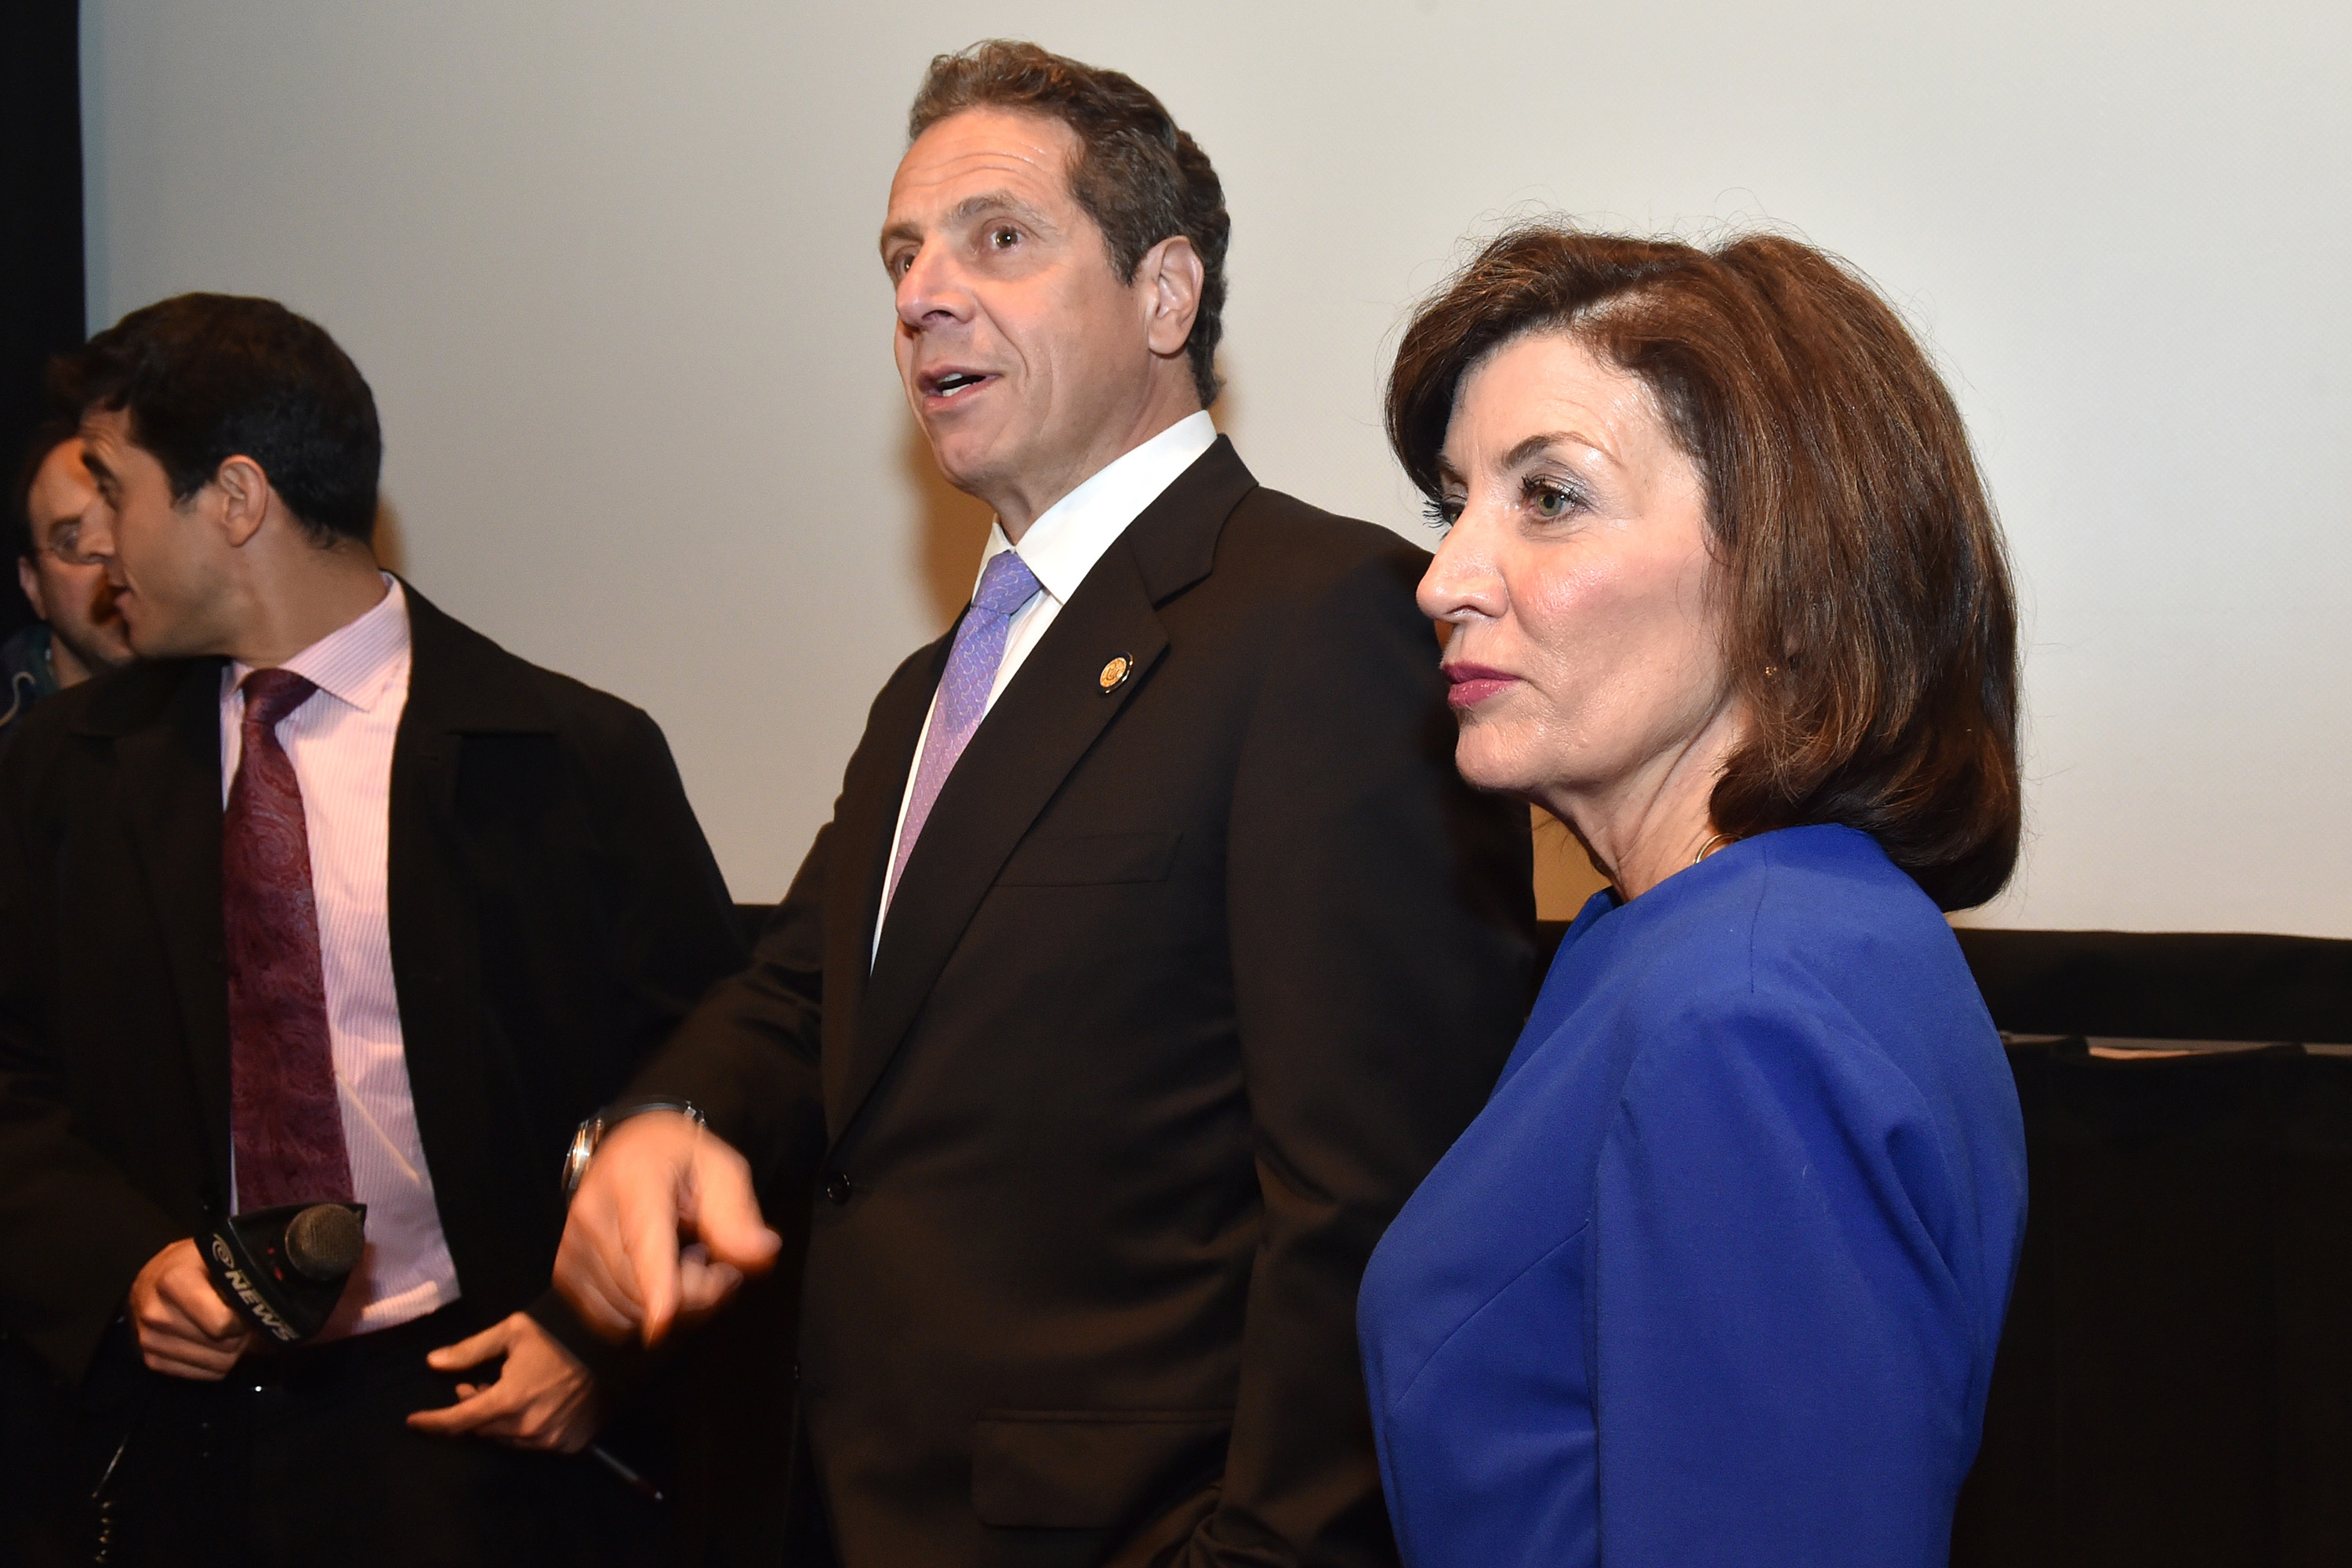 """Then-Gov. Andrew Cuomo and Lt. Gov. Kathy Hochul attend a screening at Lincoln Center of """"The Hunting Ground"""" a new documentary highlighting sexual violence at colleges and universities nationwide. June 2, 2015"""